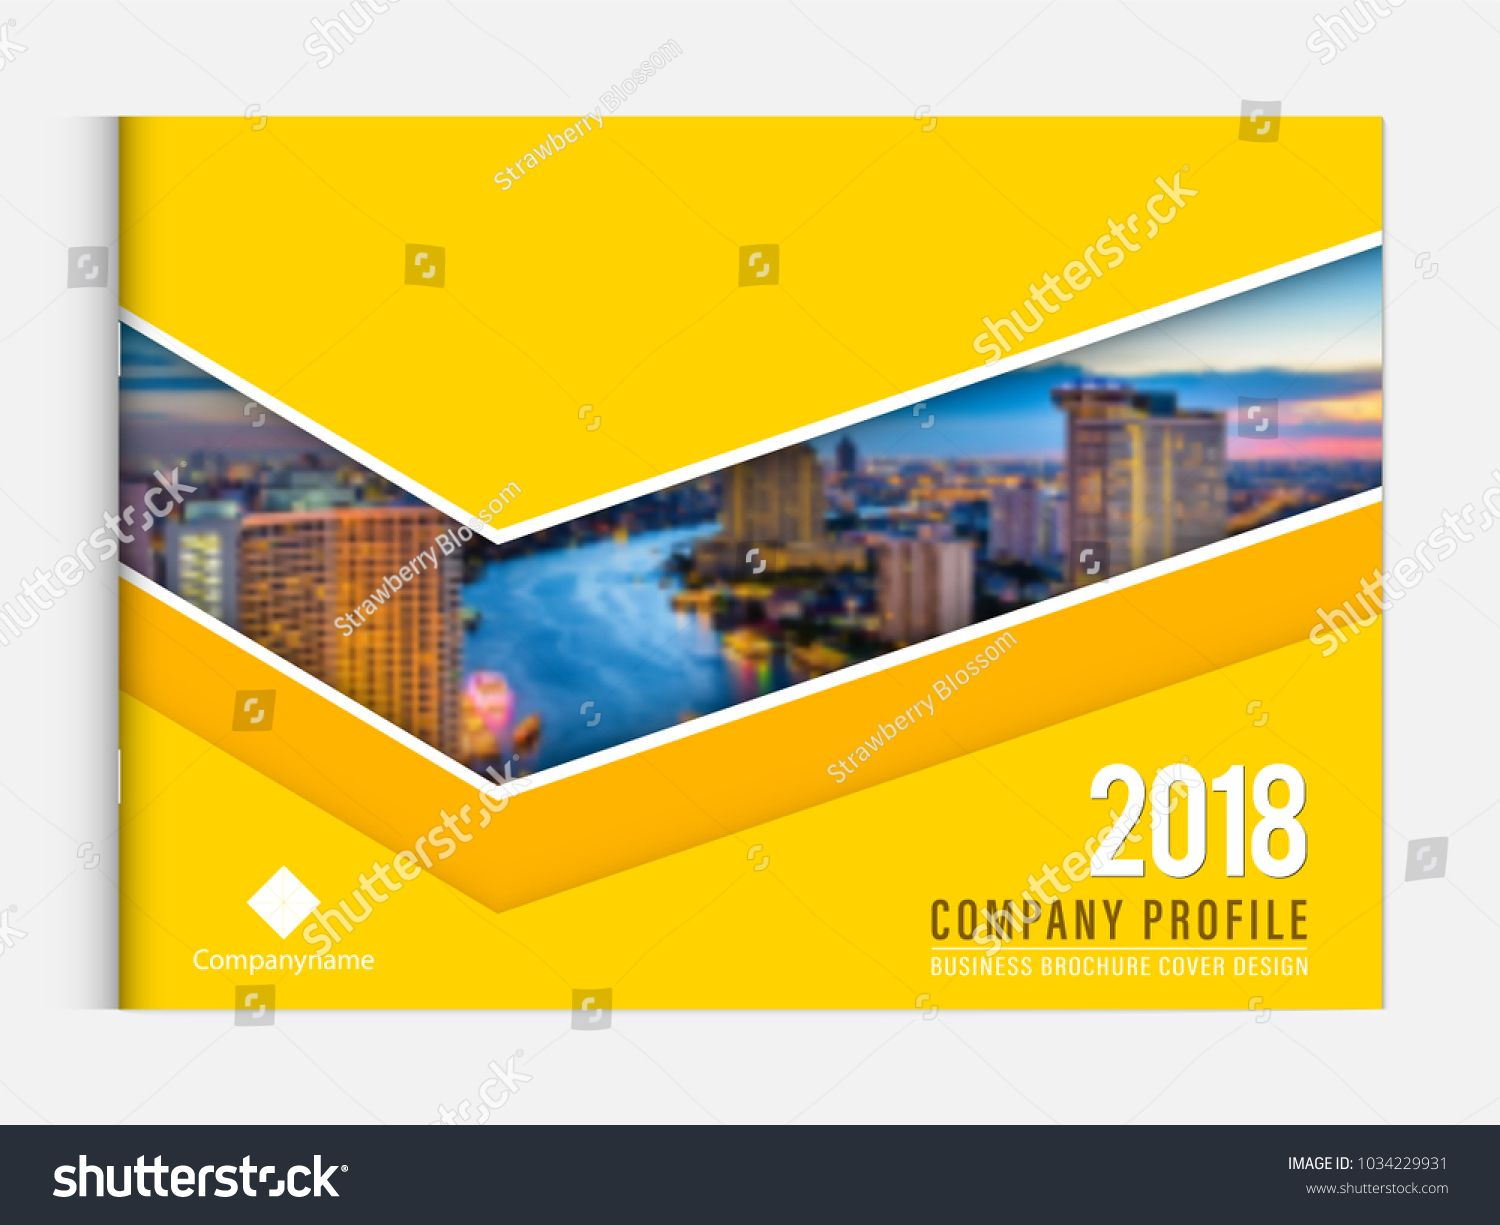 Business Brochure Cover Design Template Corporate Company Profile